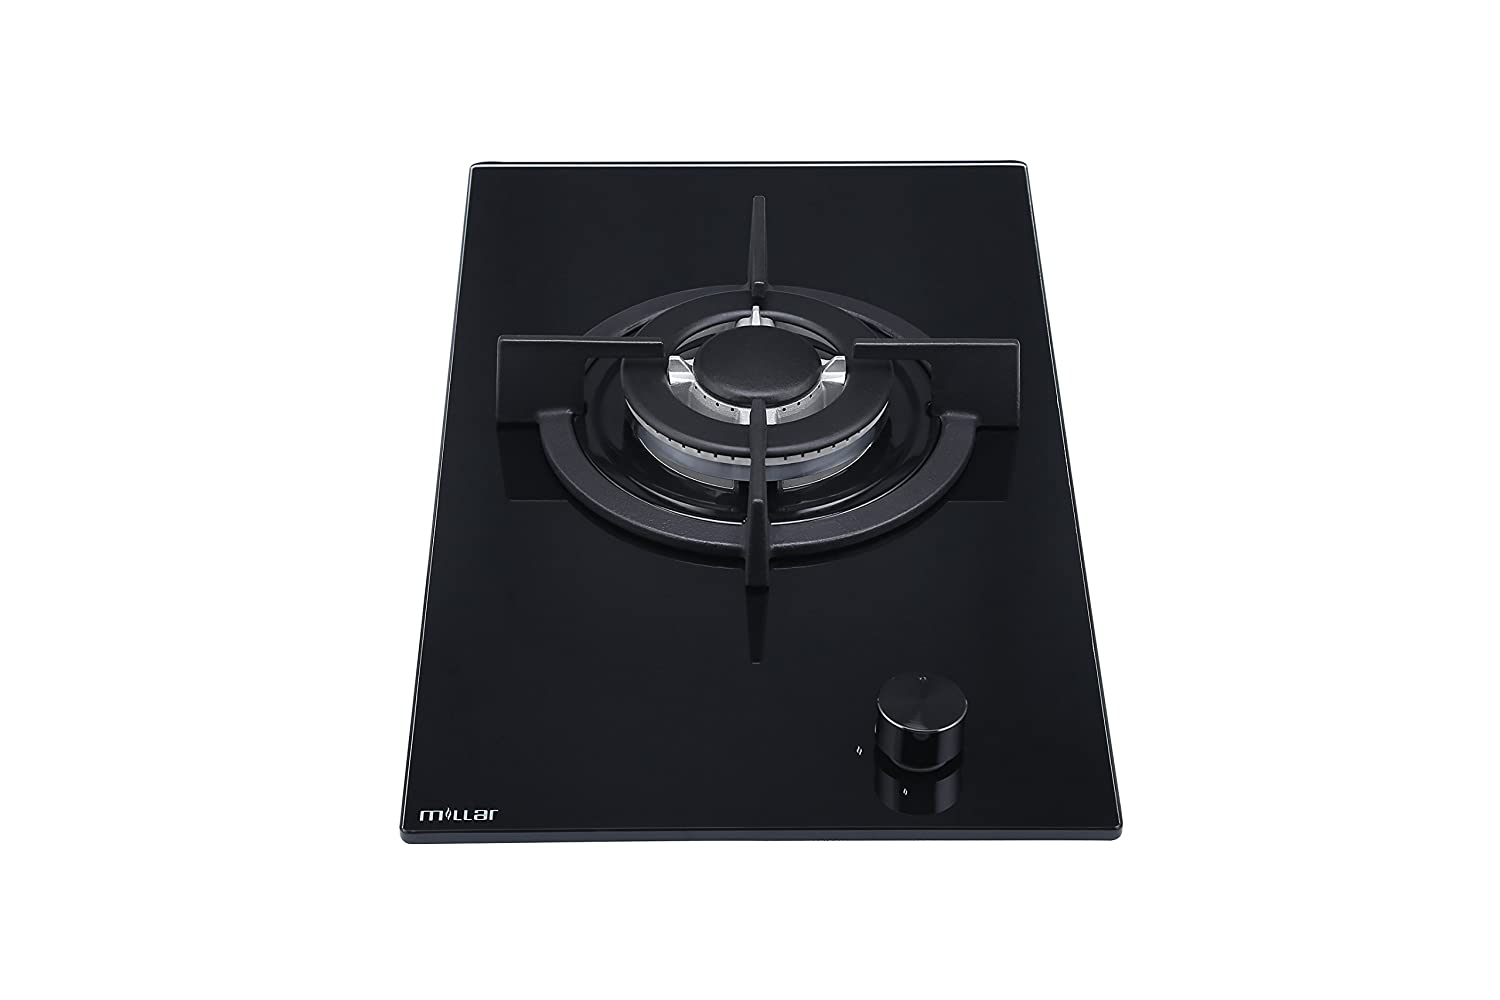 MILLAR GH3011PB 30cm Built-in 1 Burner Domino Gas on Glass Hob/Cooker / Cooktop with FFD